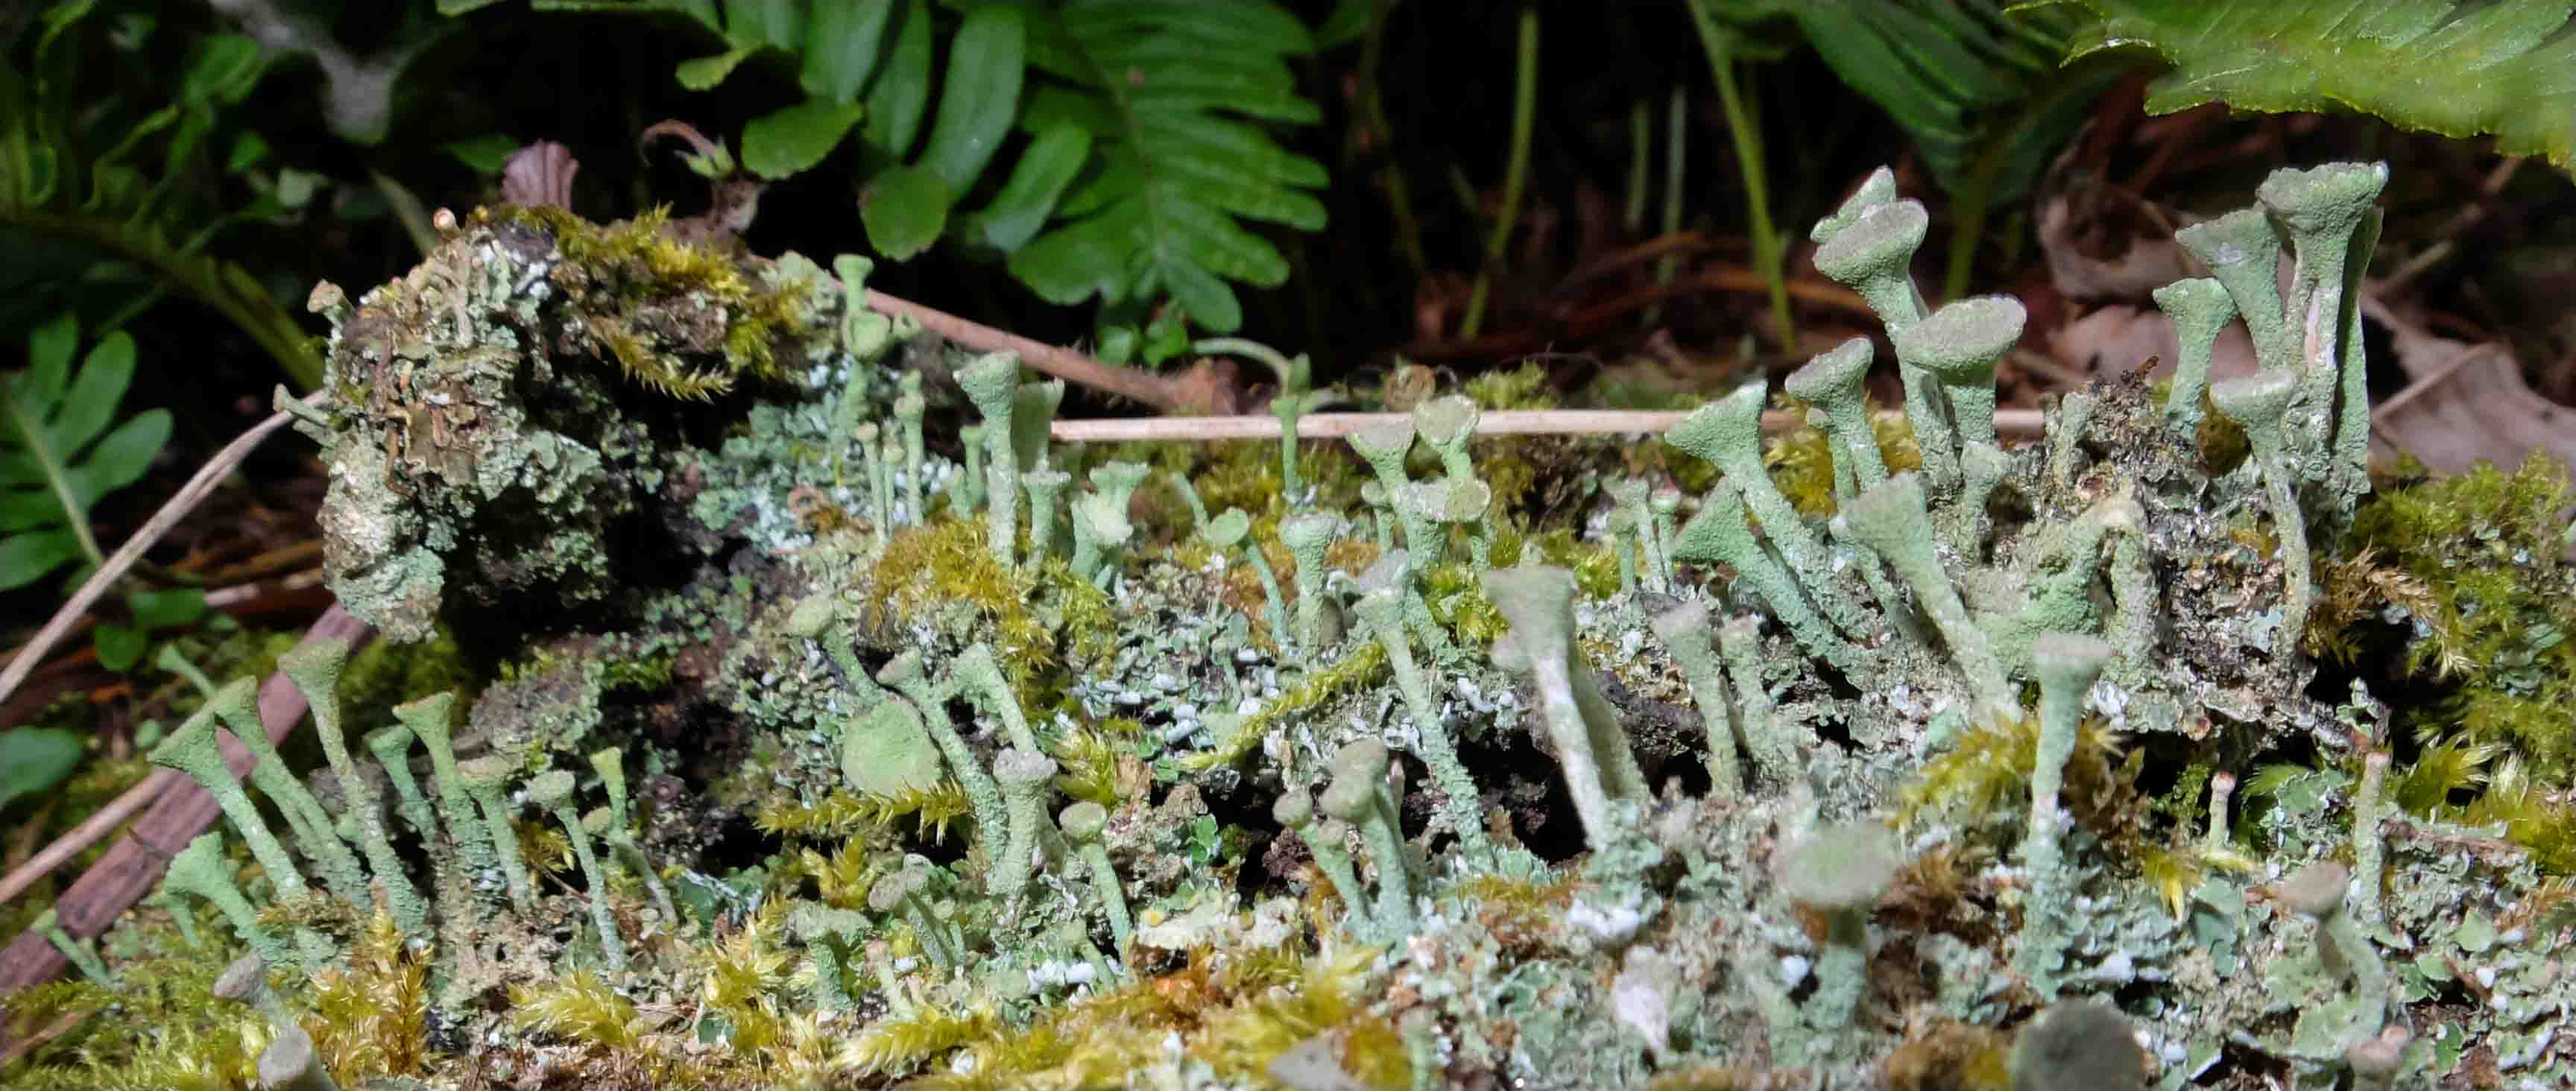 Cladonia fimbriata at Wildboarclough2.jpg